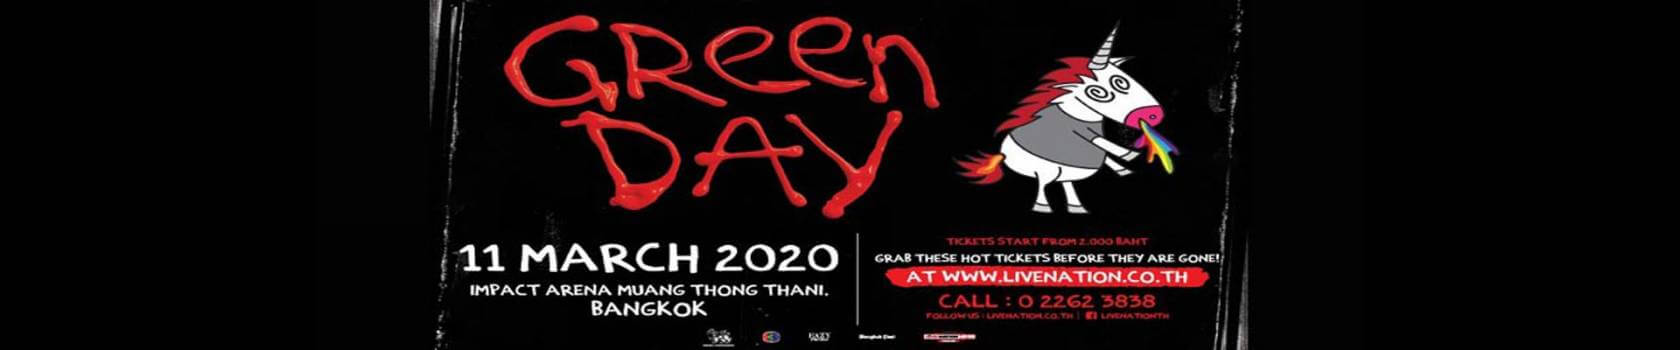 Green Day Live in Bangkok 2020